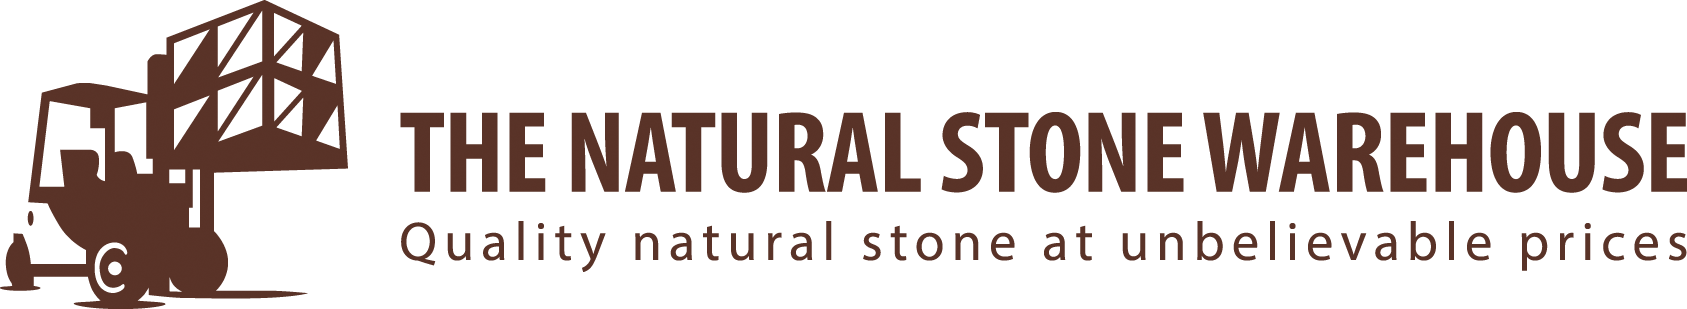 The Natural Stone Warehouse